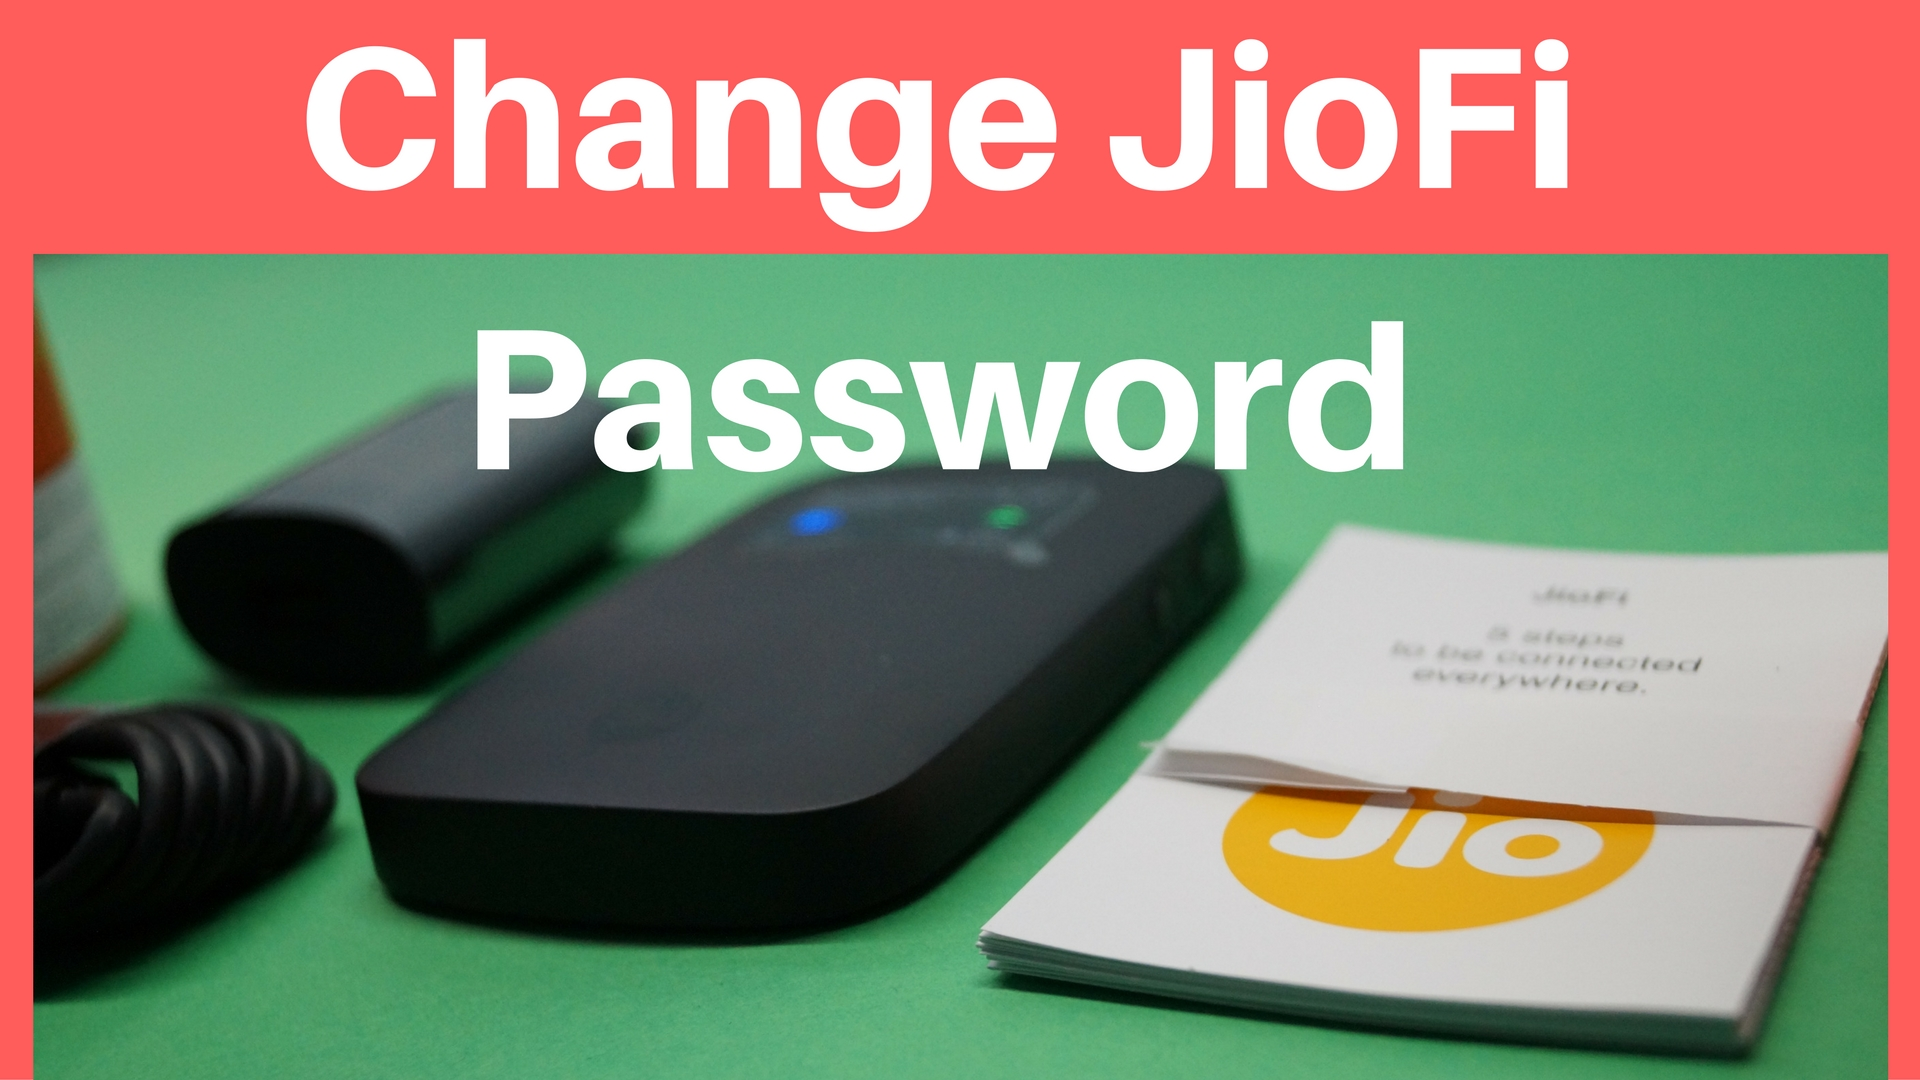 change-jiofi-password